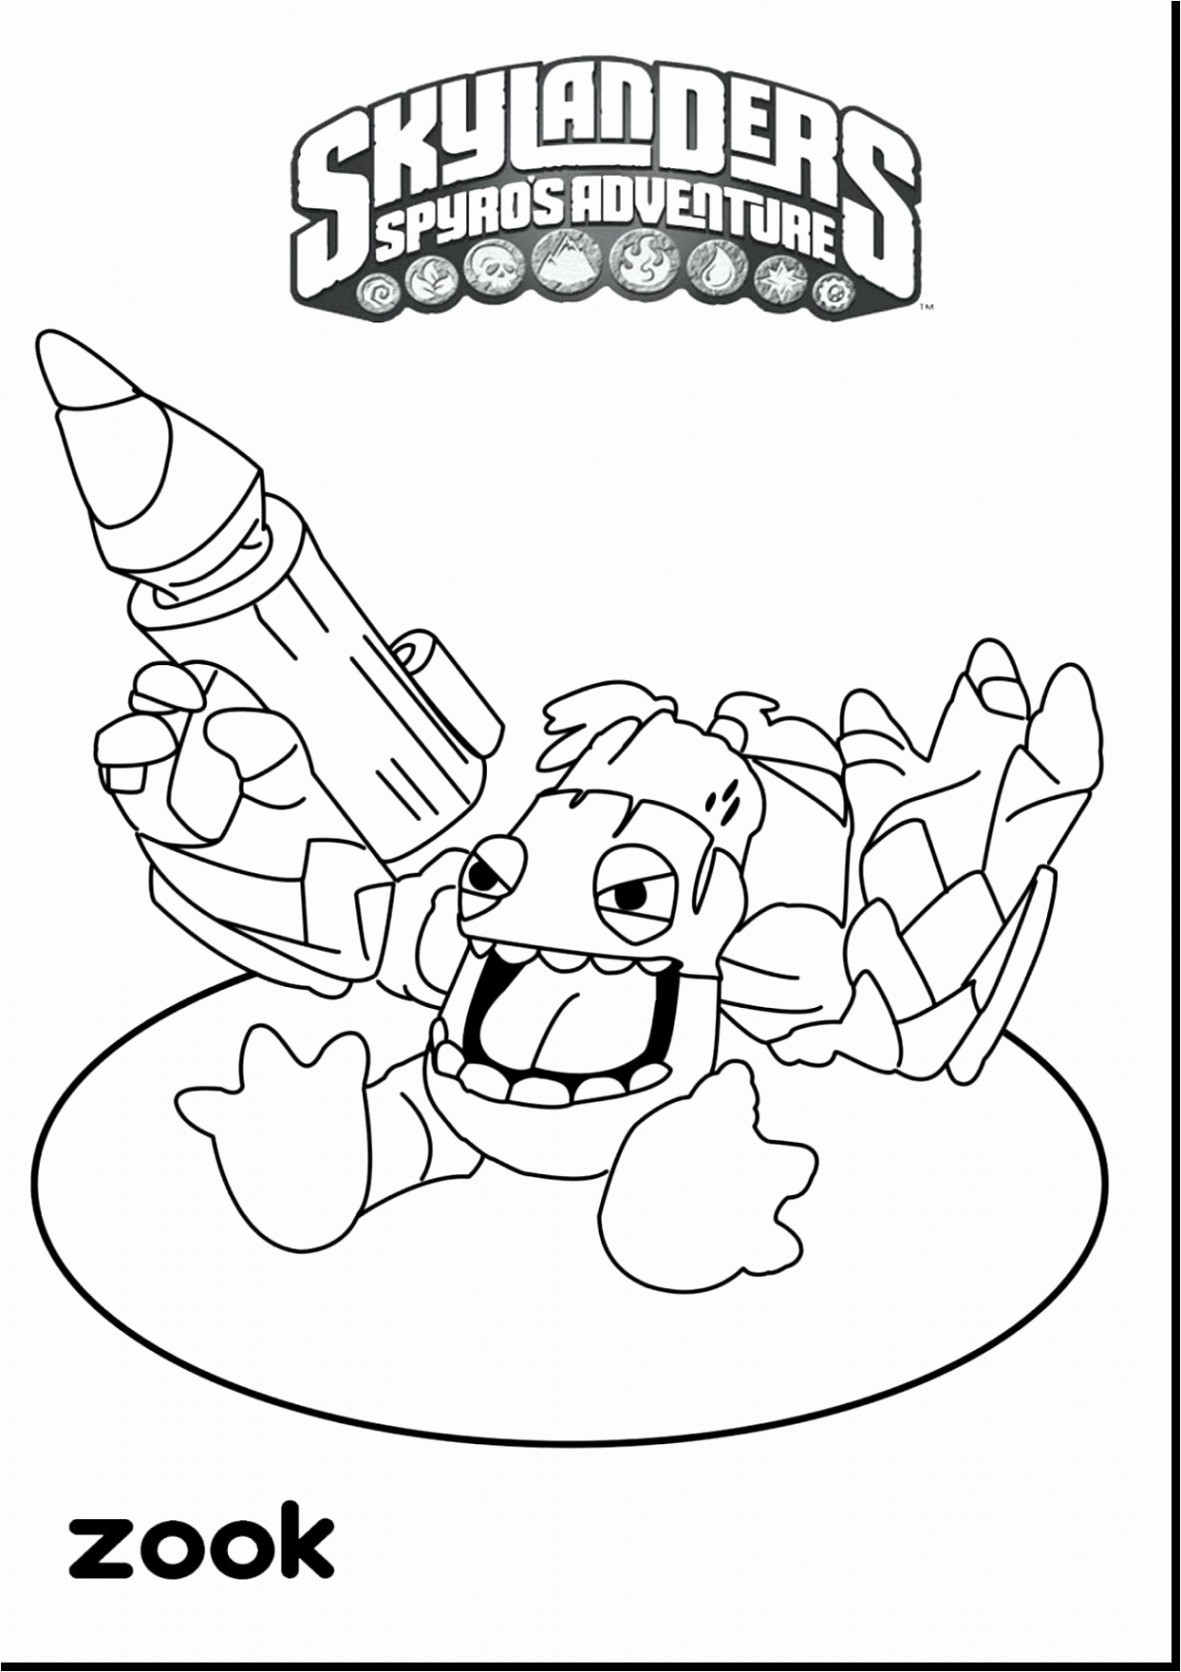 Christmas Coloring Pages Easy With Printable Stockings Fresh Free